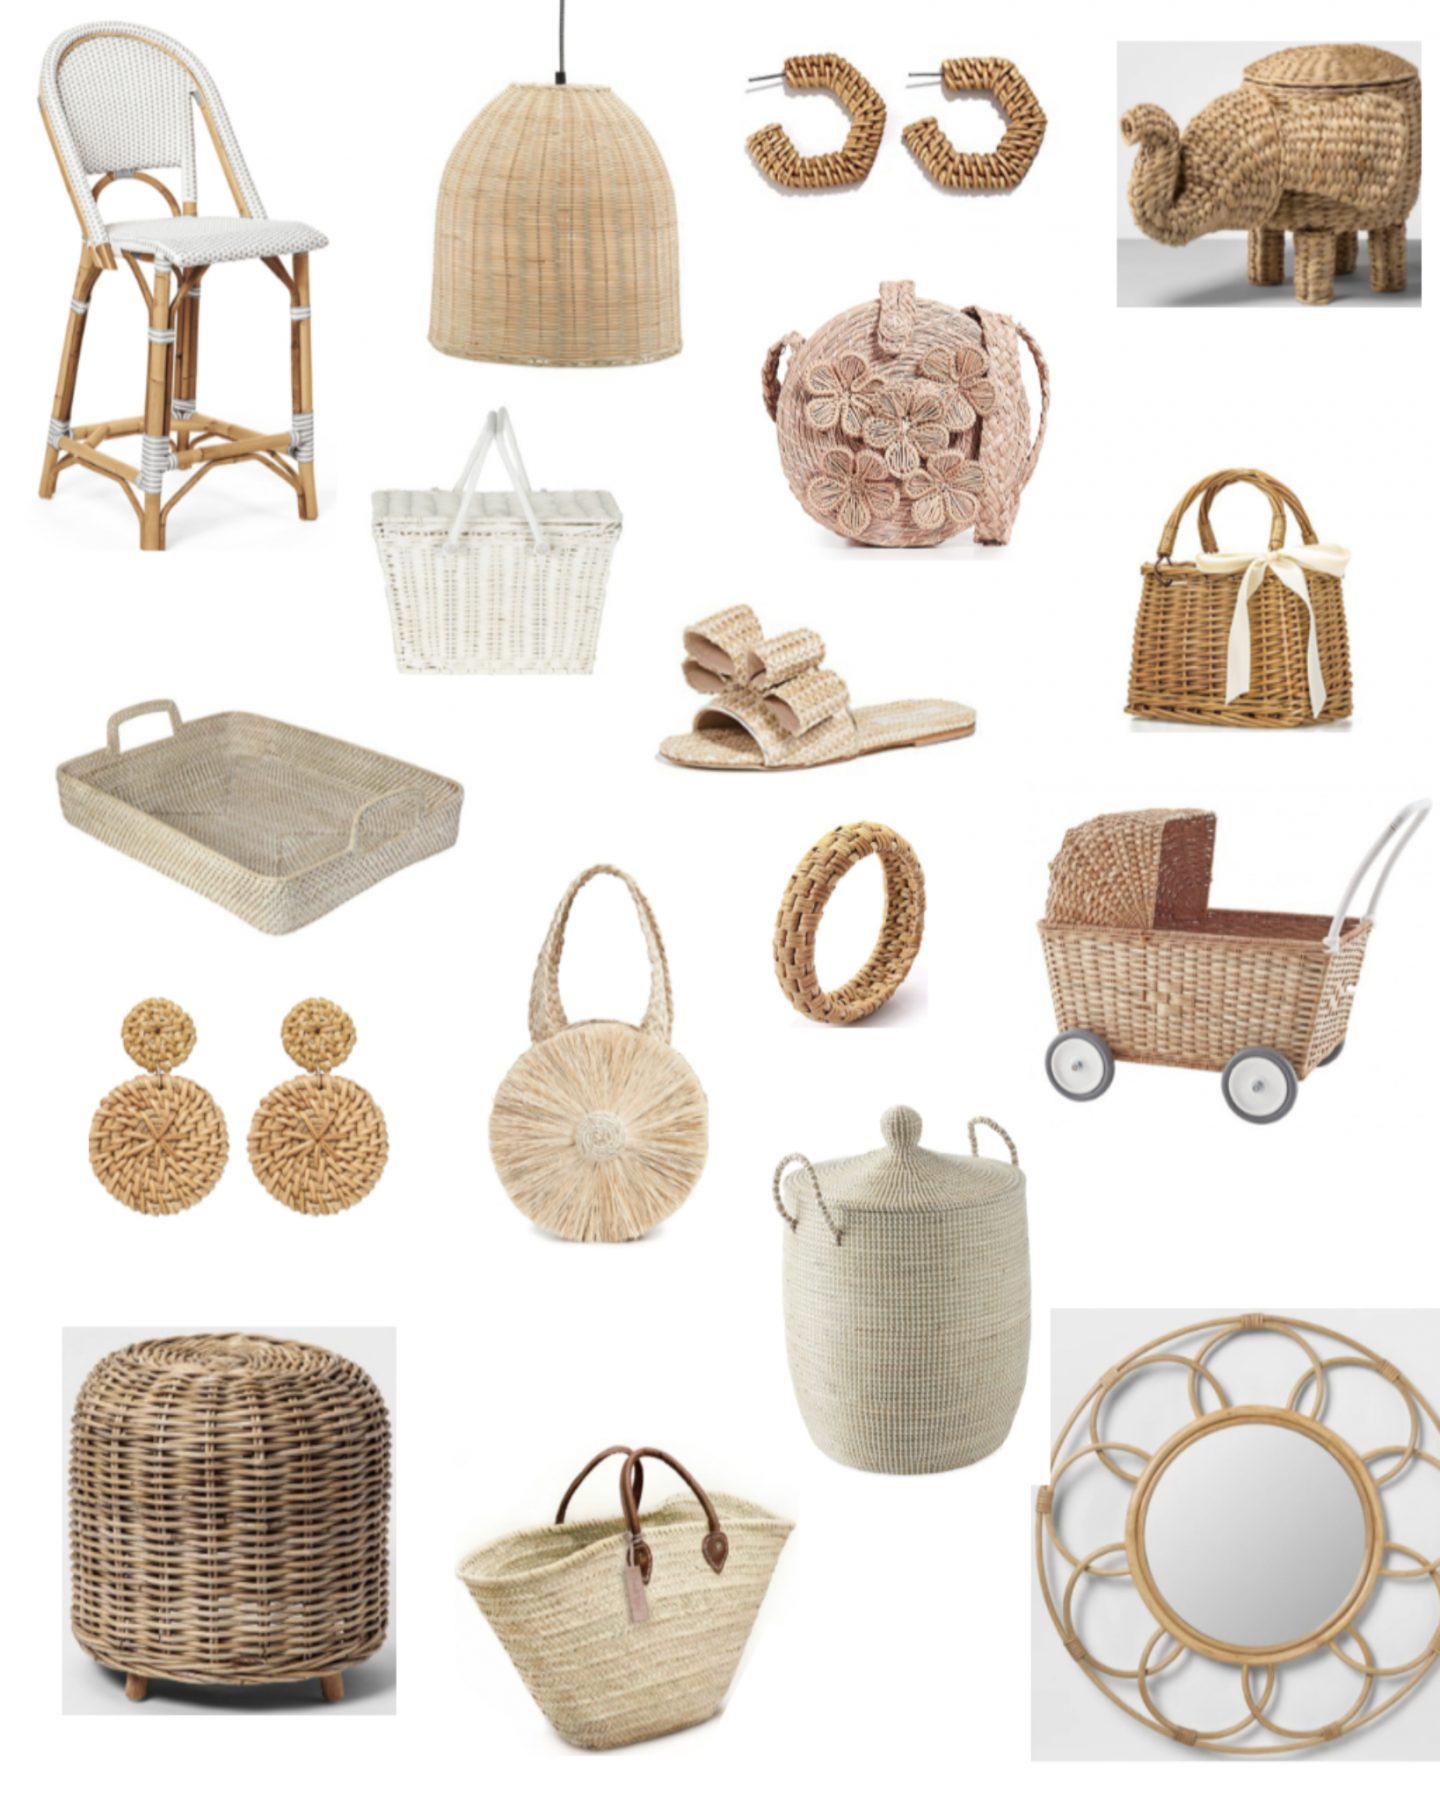 Wicker, Rattan & Straw Obsessed!